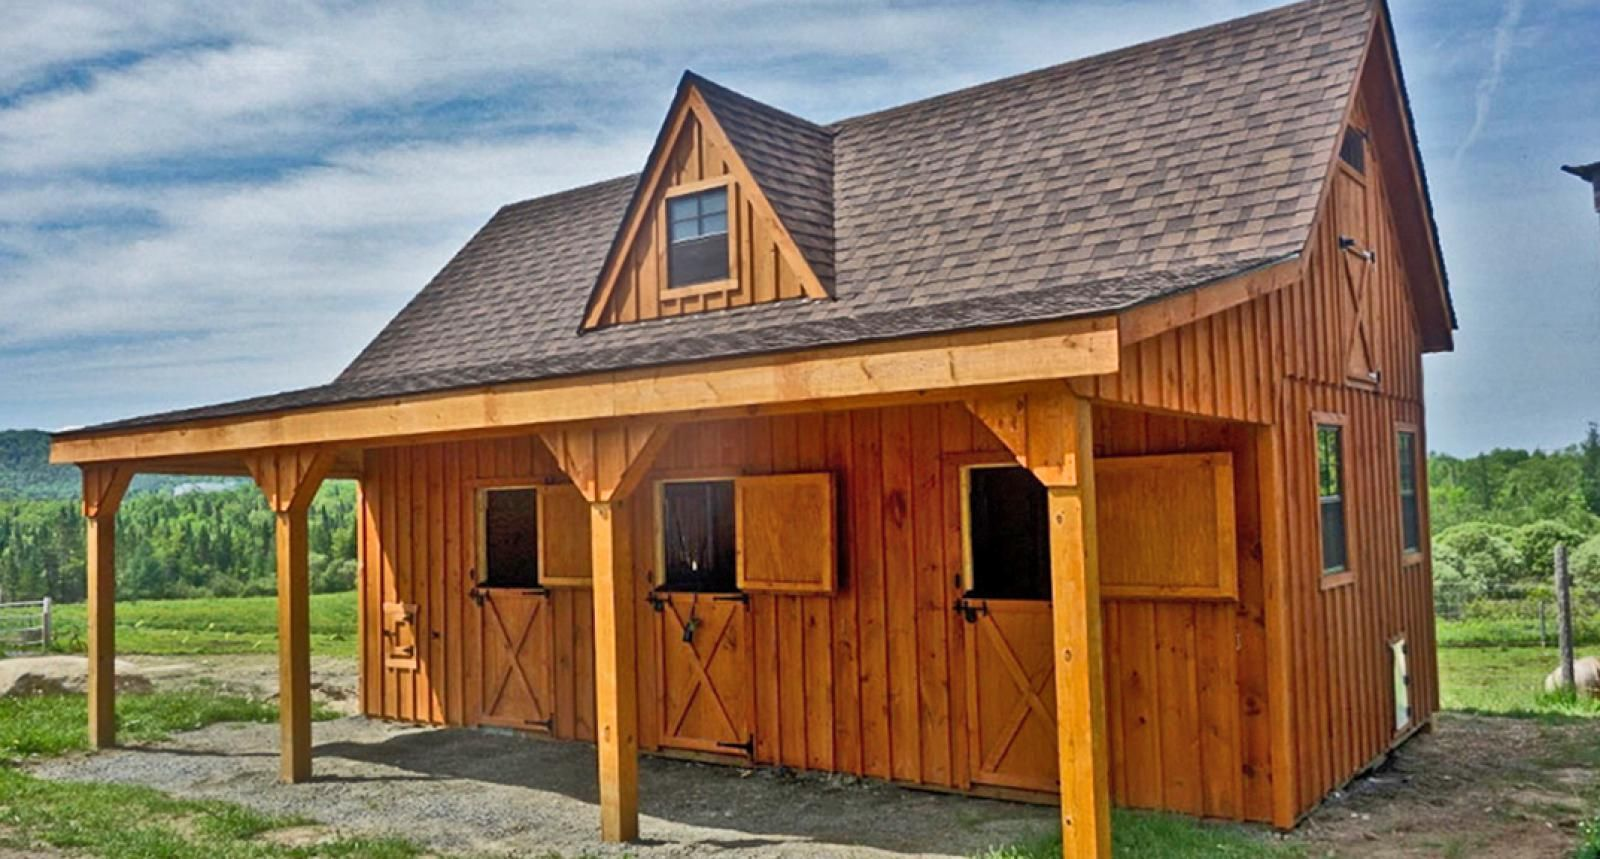 horse-barns-miniature-barns-14x28-mini-raised-roof.jpg?itok=PewD6T7G ...